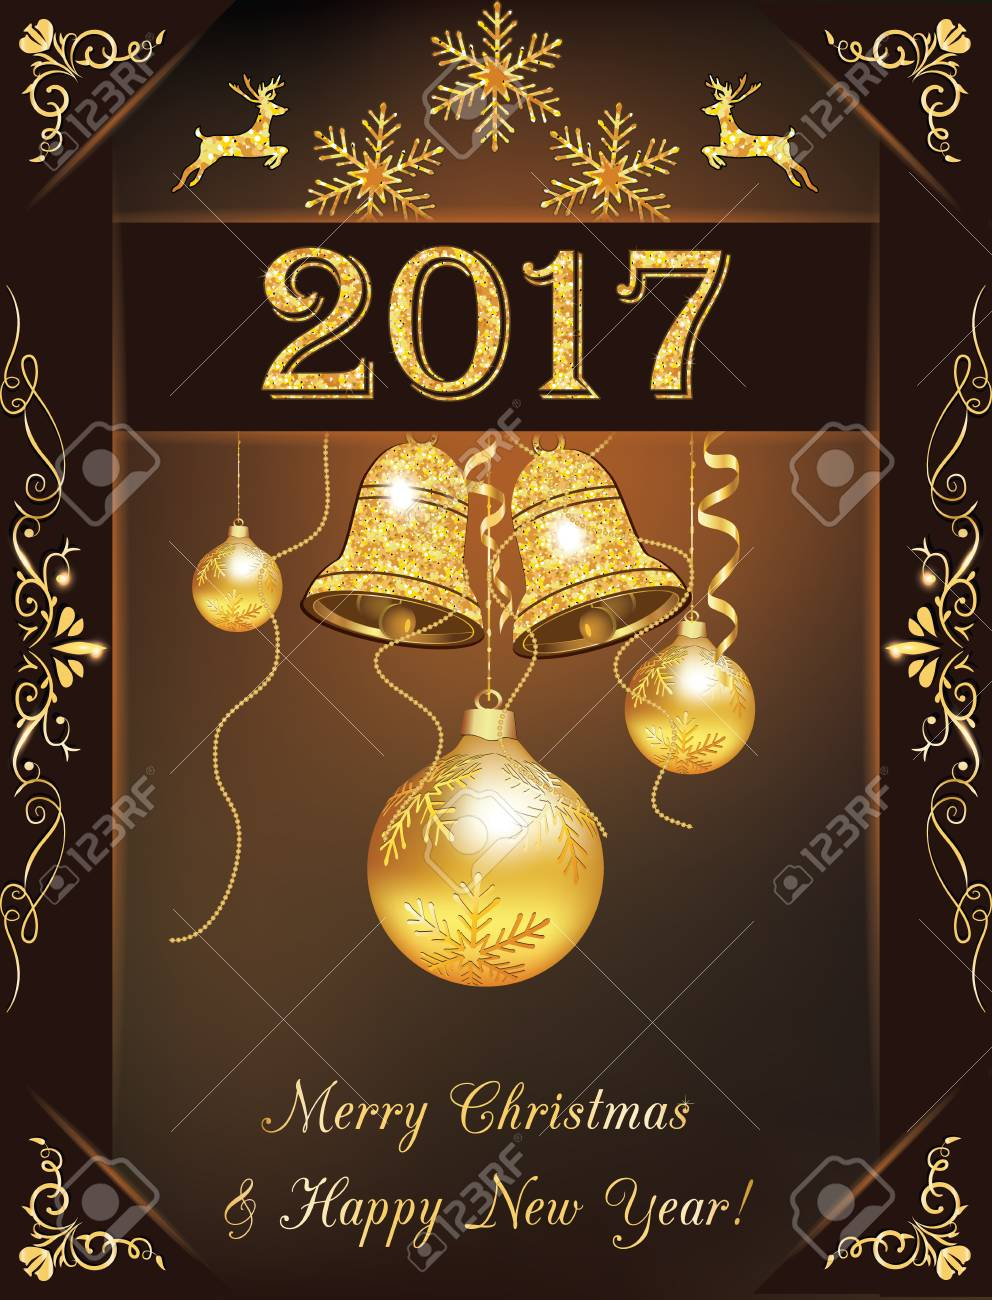 Christmas and 2017 new year greeting card golden brown 2017 stock christmas and 2017 new year greeting card golden brown 2017 greeting card for christmas and m4hsunfo